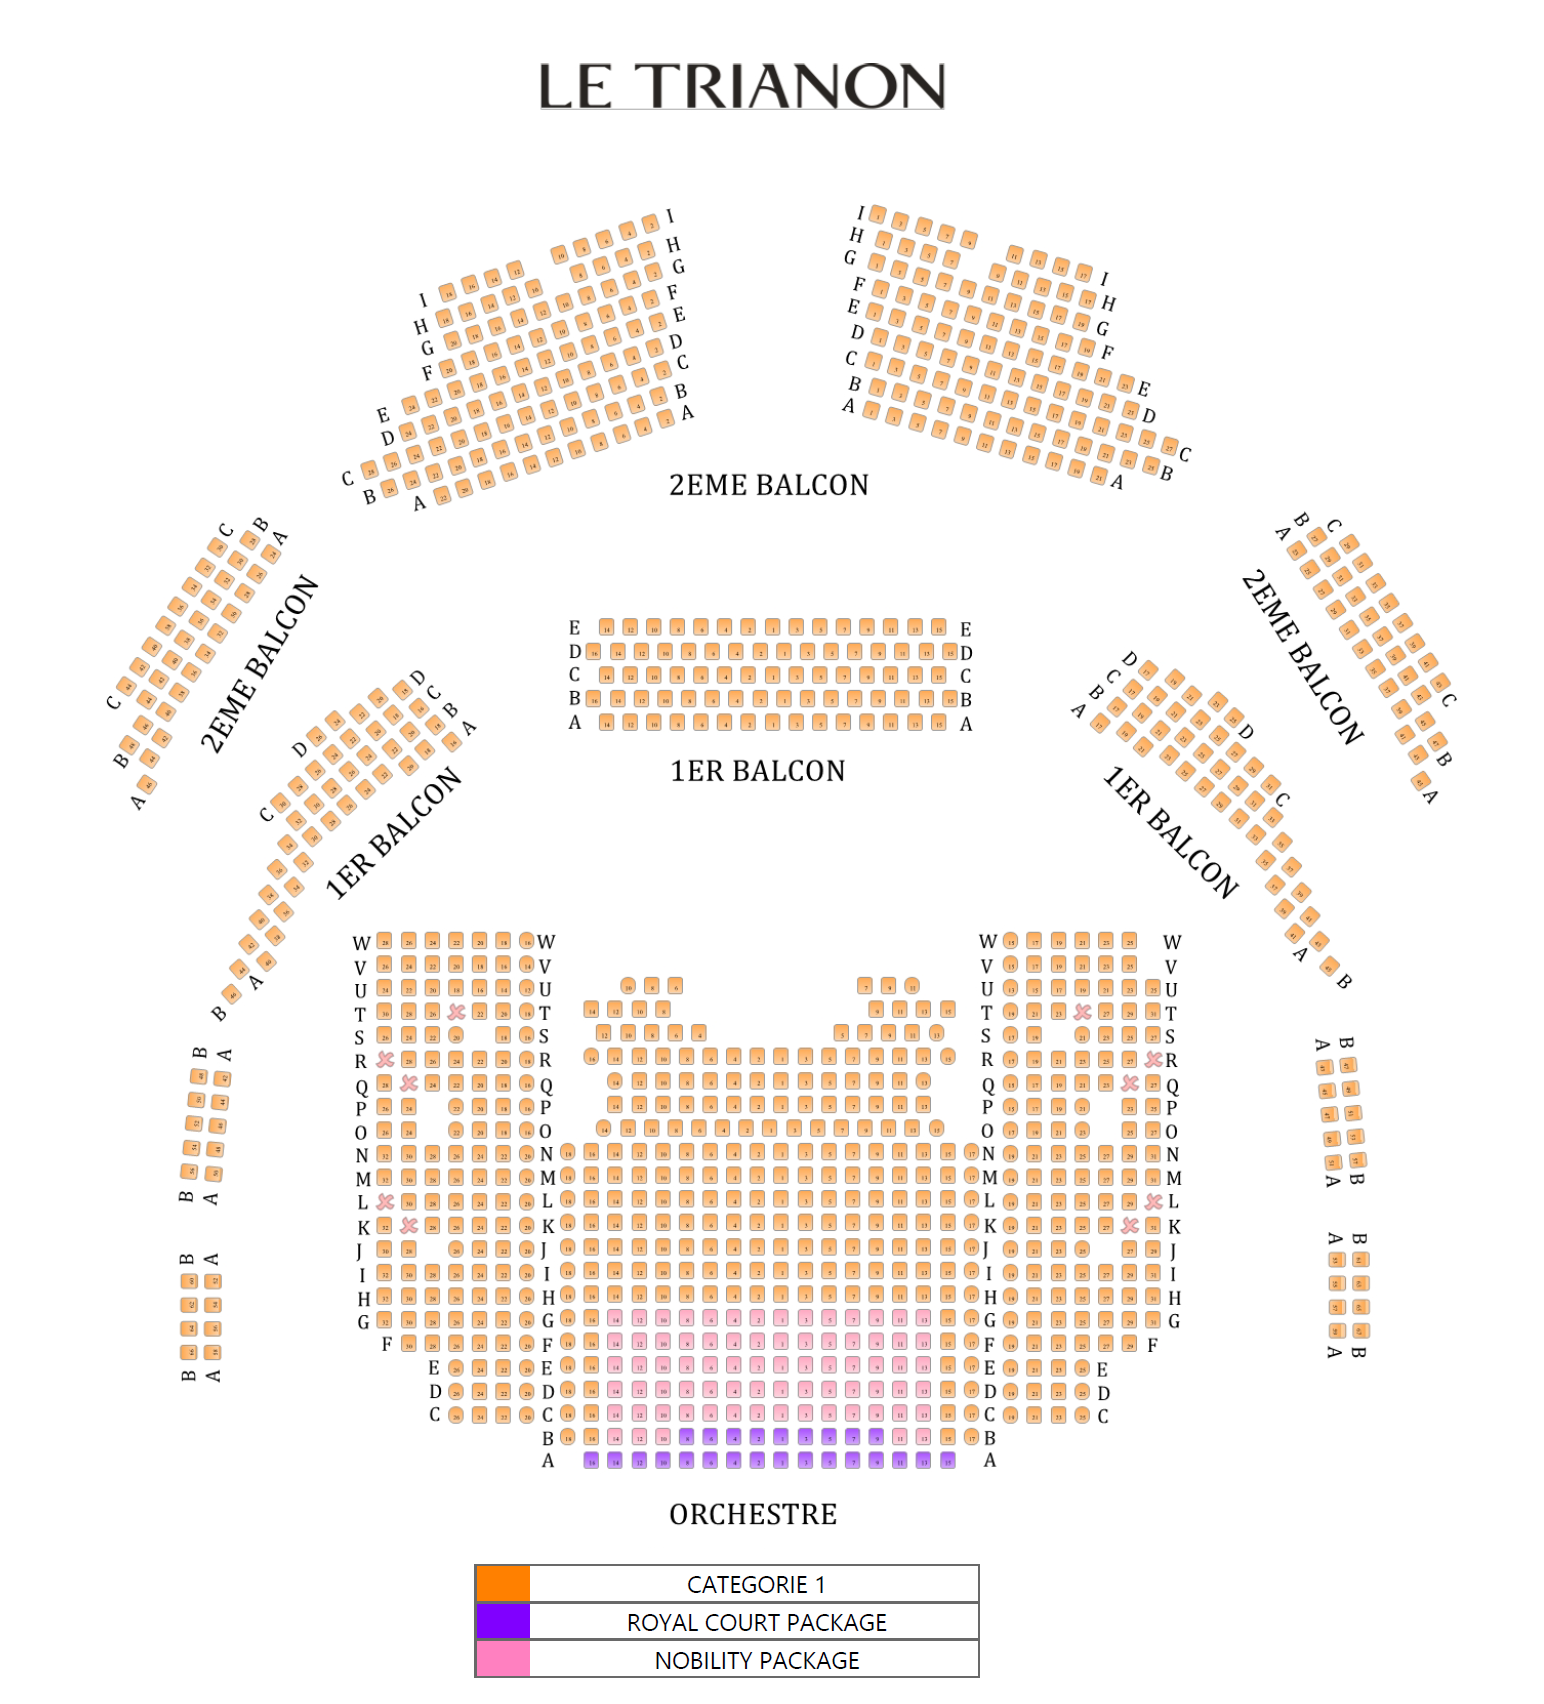 PARIS - LE TRIANON